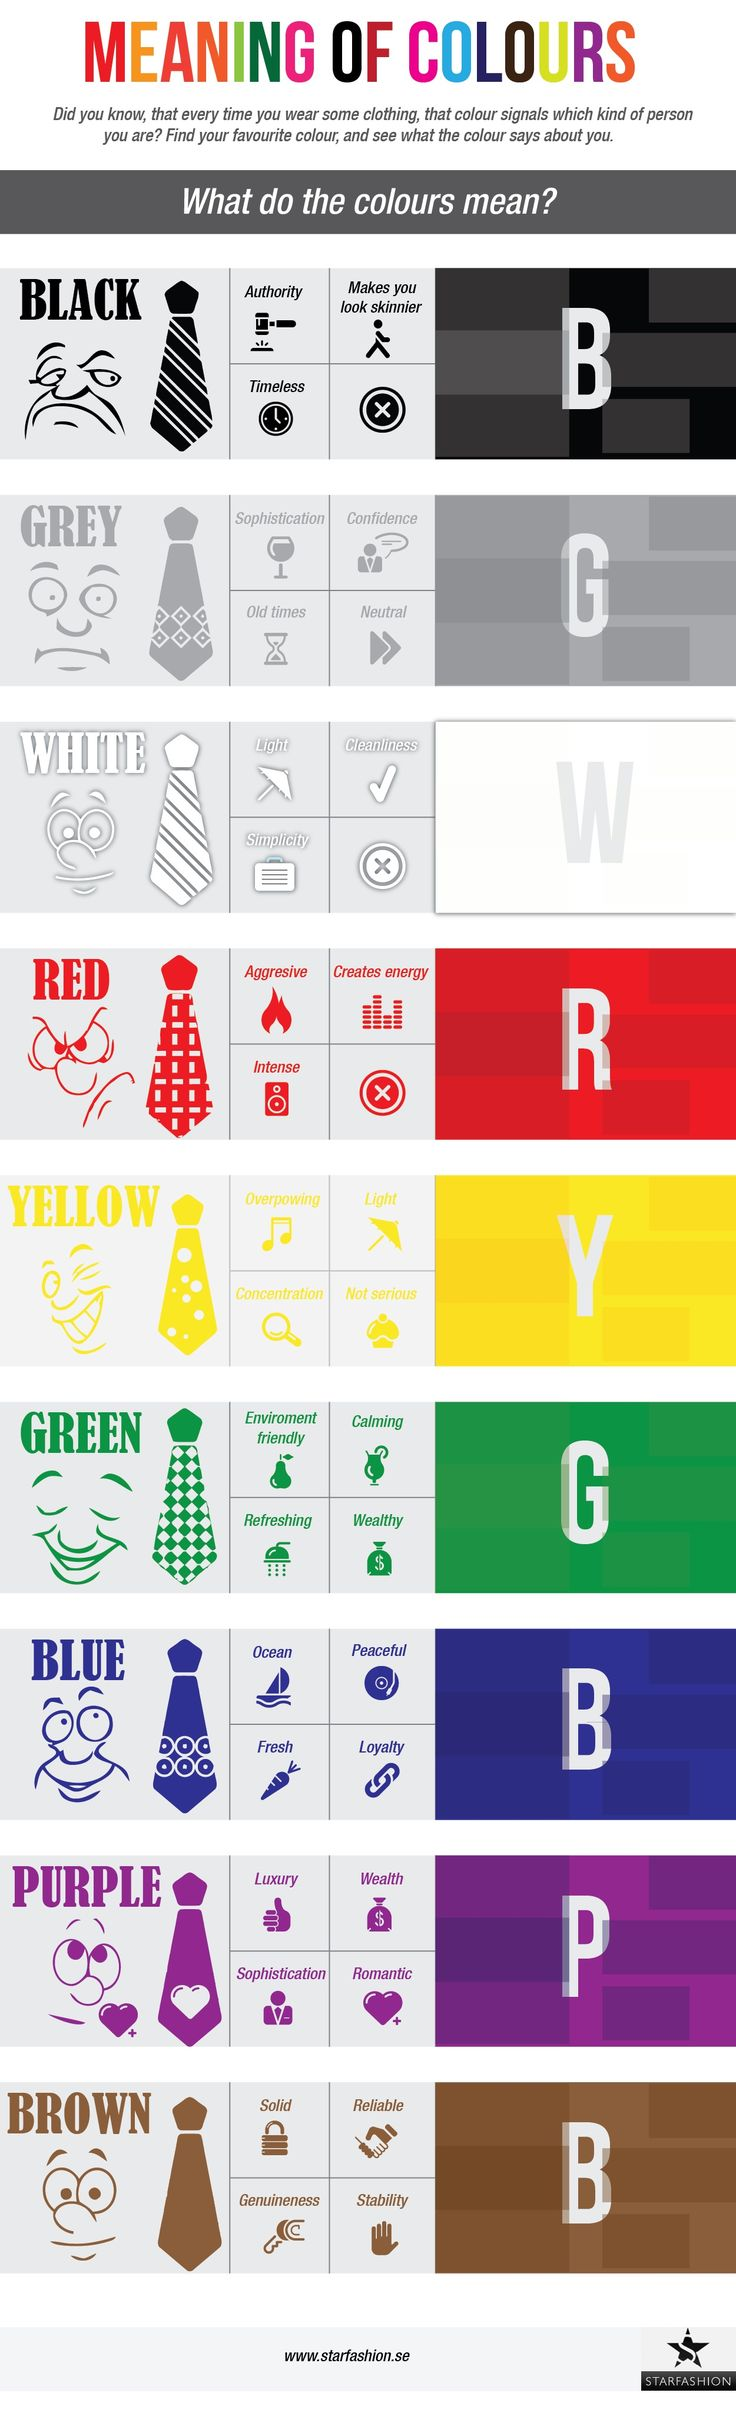 Infographic: The Meaning Of Colors - DesignTAXI.com